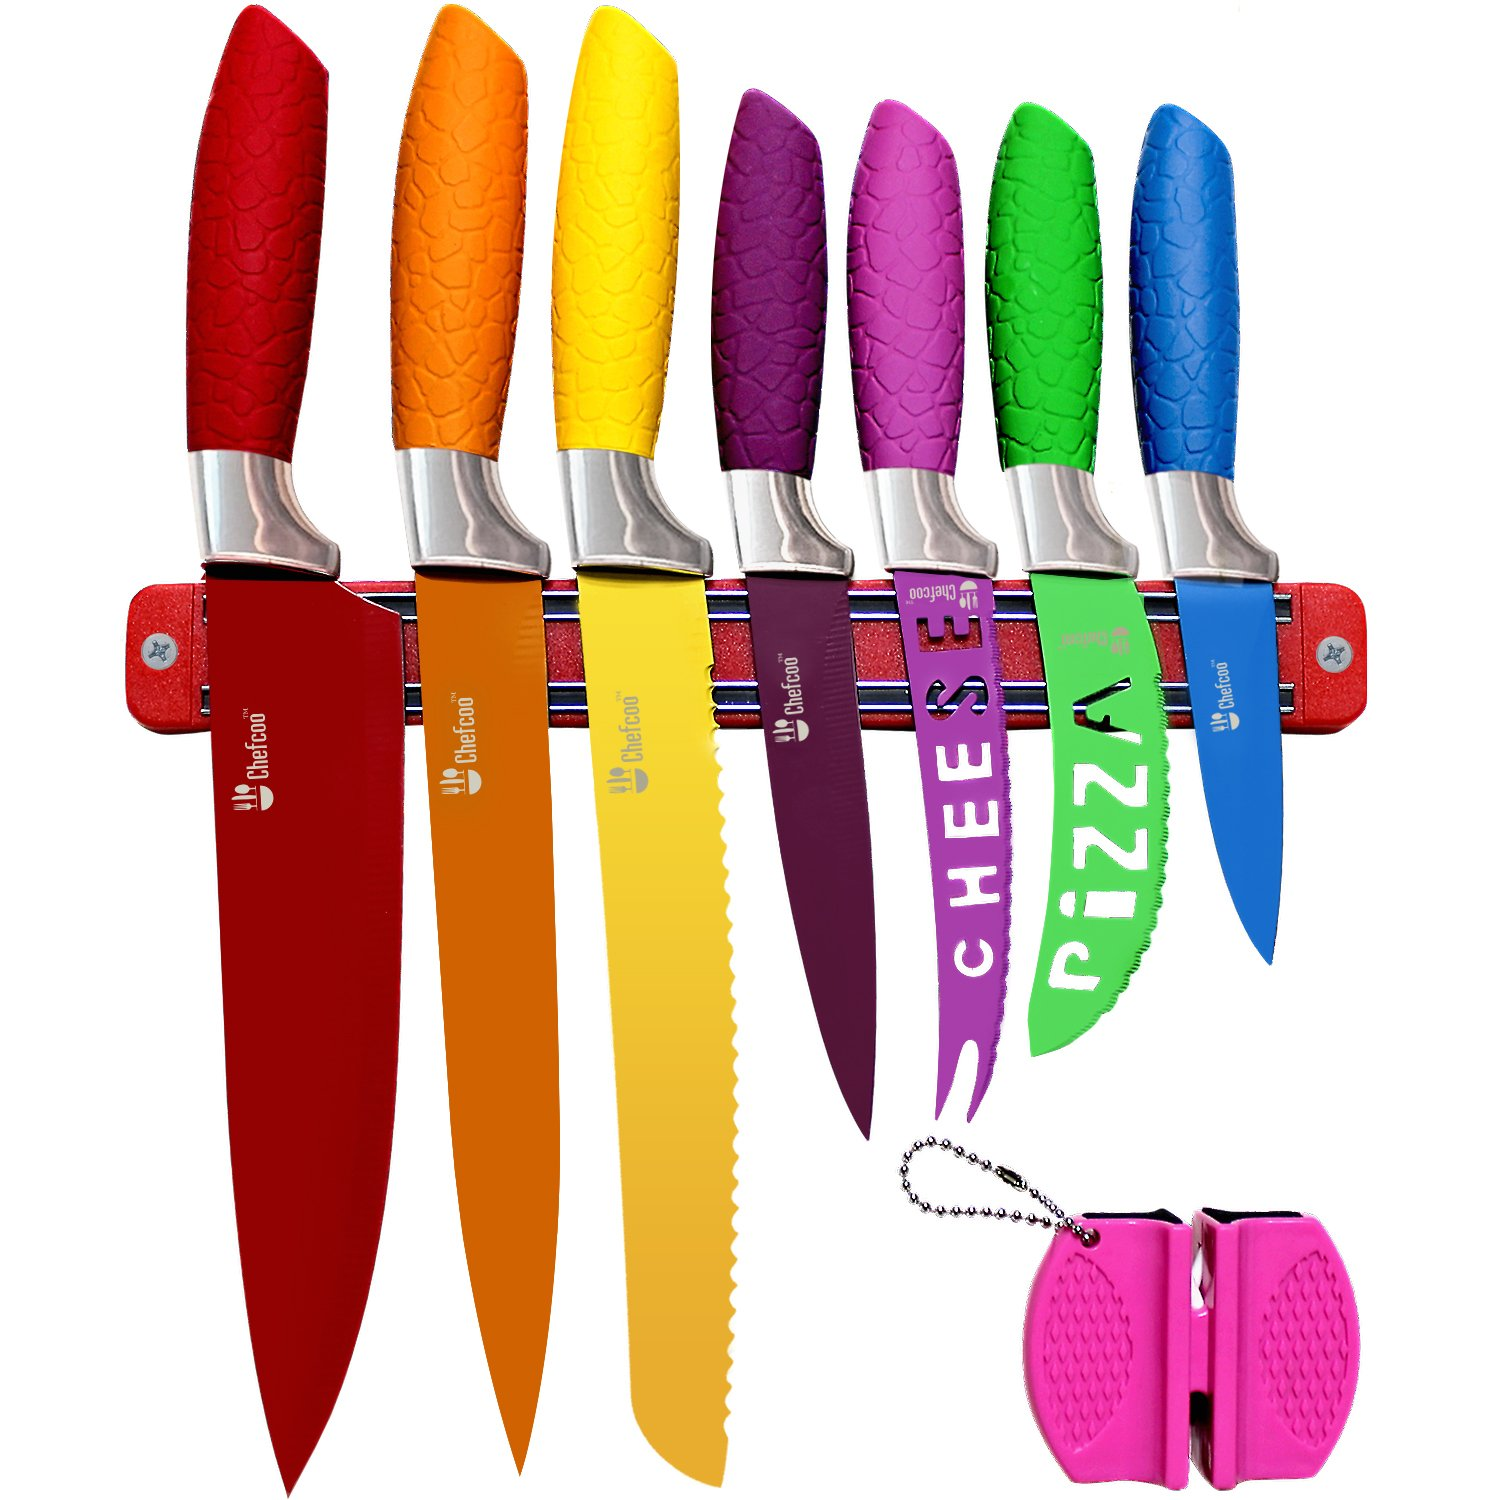 Chefcoo Kitchen Knife Set Plus Magnetic Strip and Sharpener One Cutlery Knives-Best Color Cooking Gadgets-Includes Cheese, Pizza, Paring, 14.5 x 10.9 x 1.5 inches Red, Yellow, Blue, Green, Pink